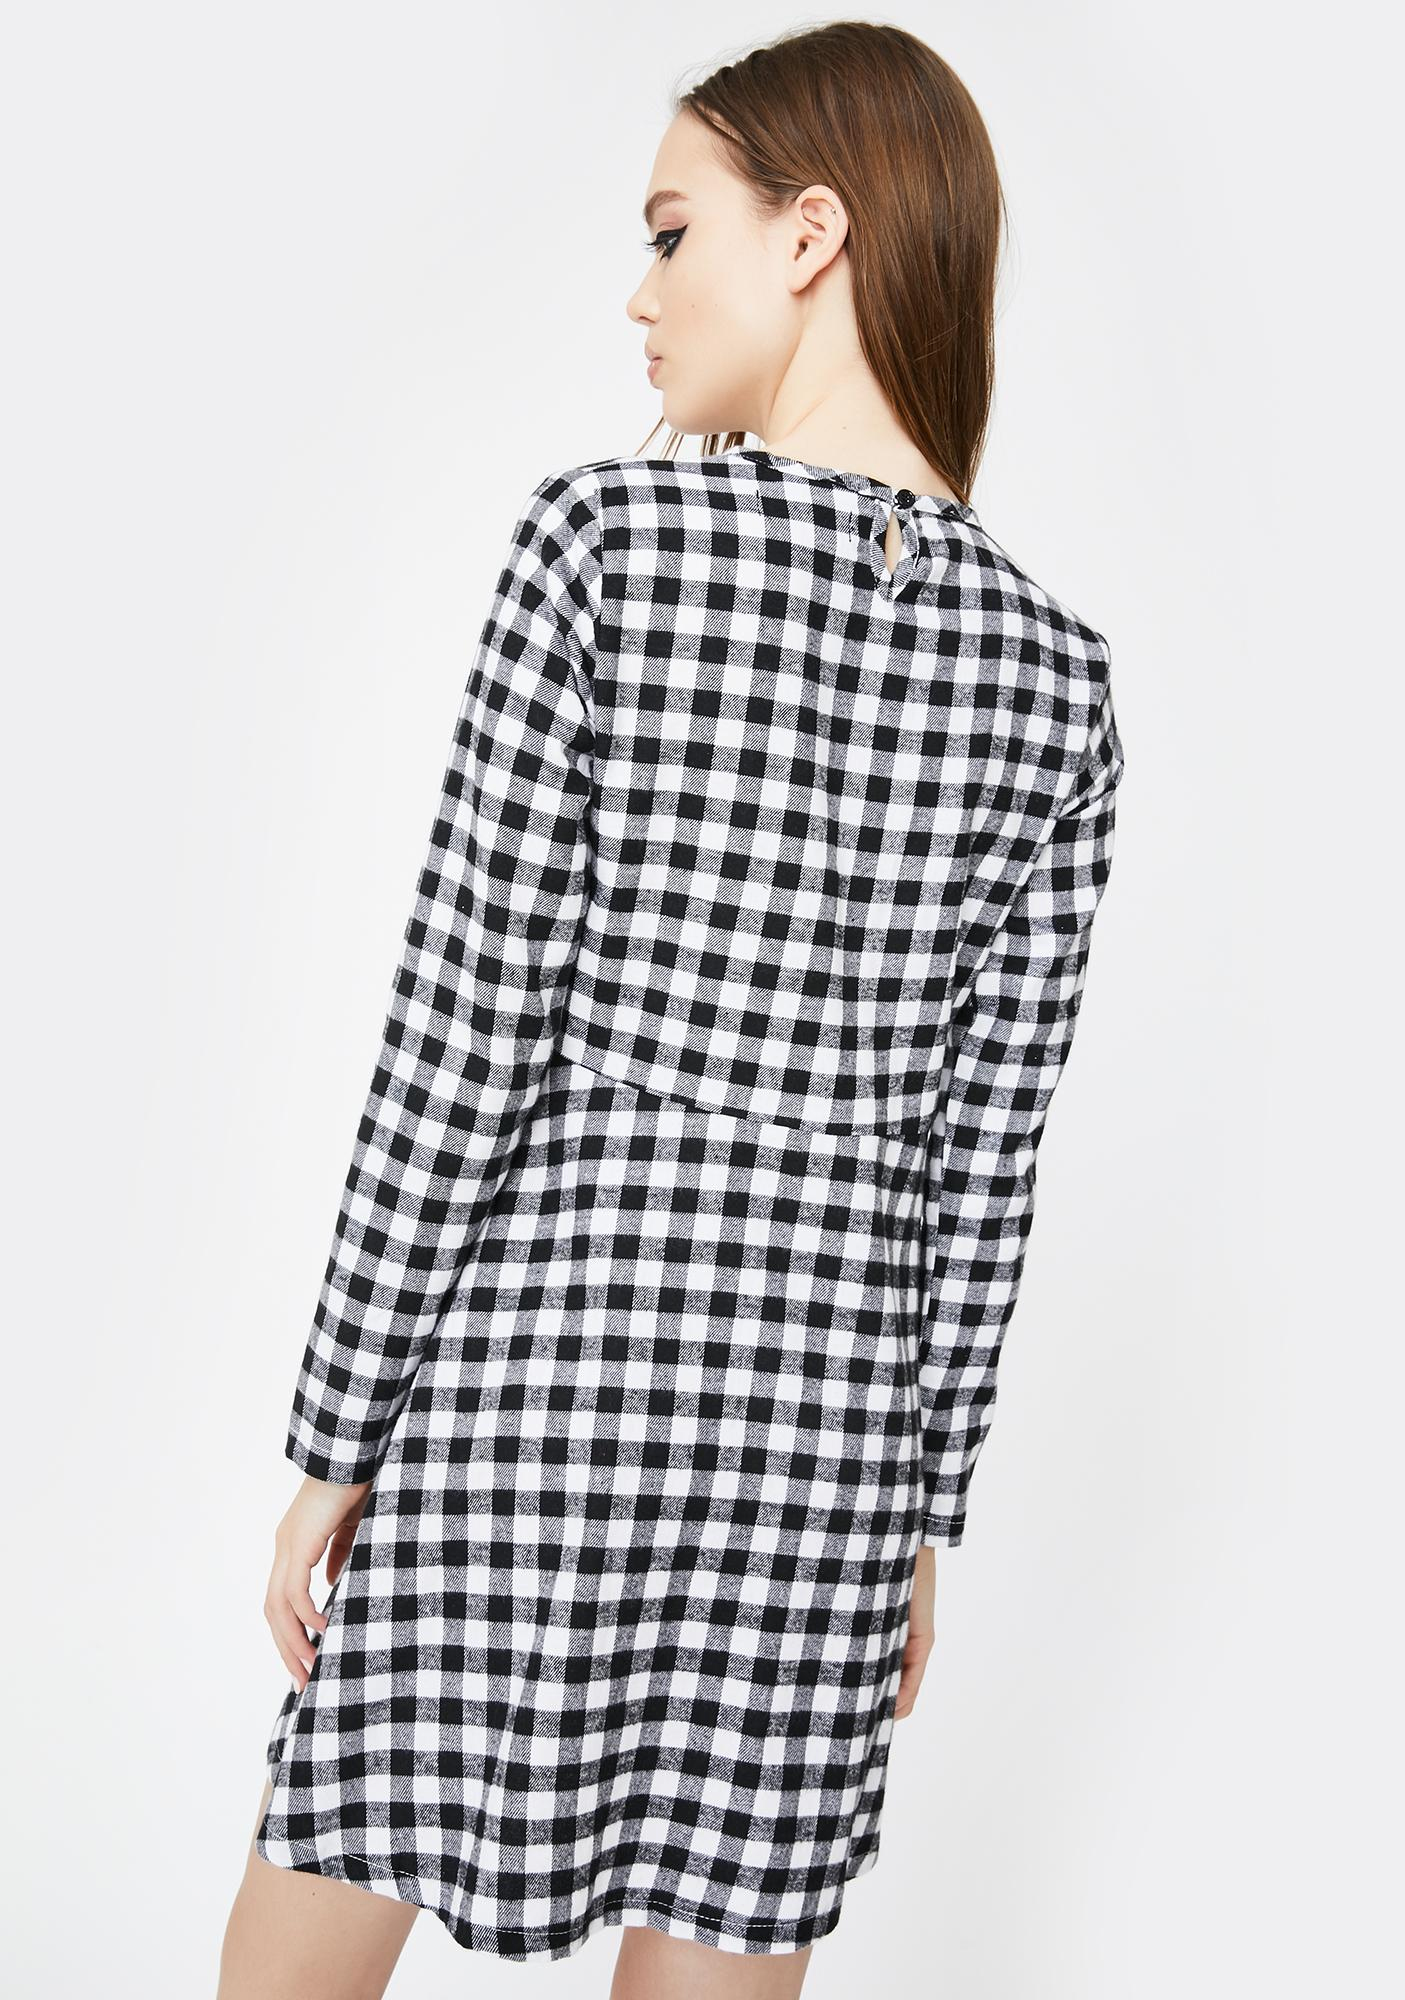 Daisy Street Gingham Check Smock Dress